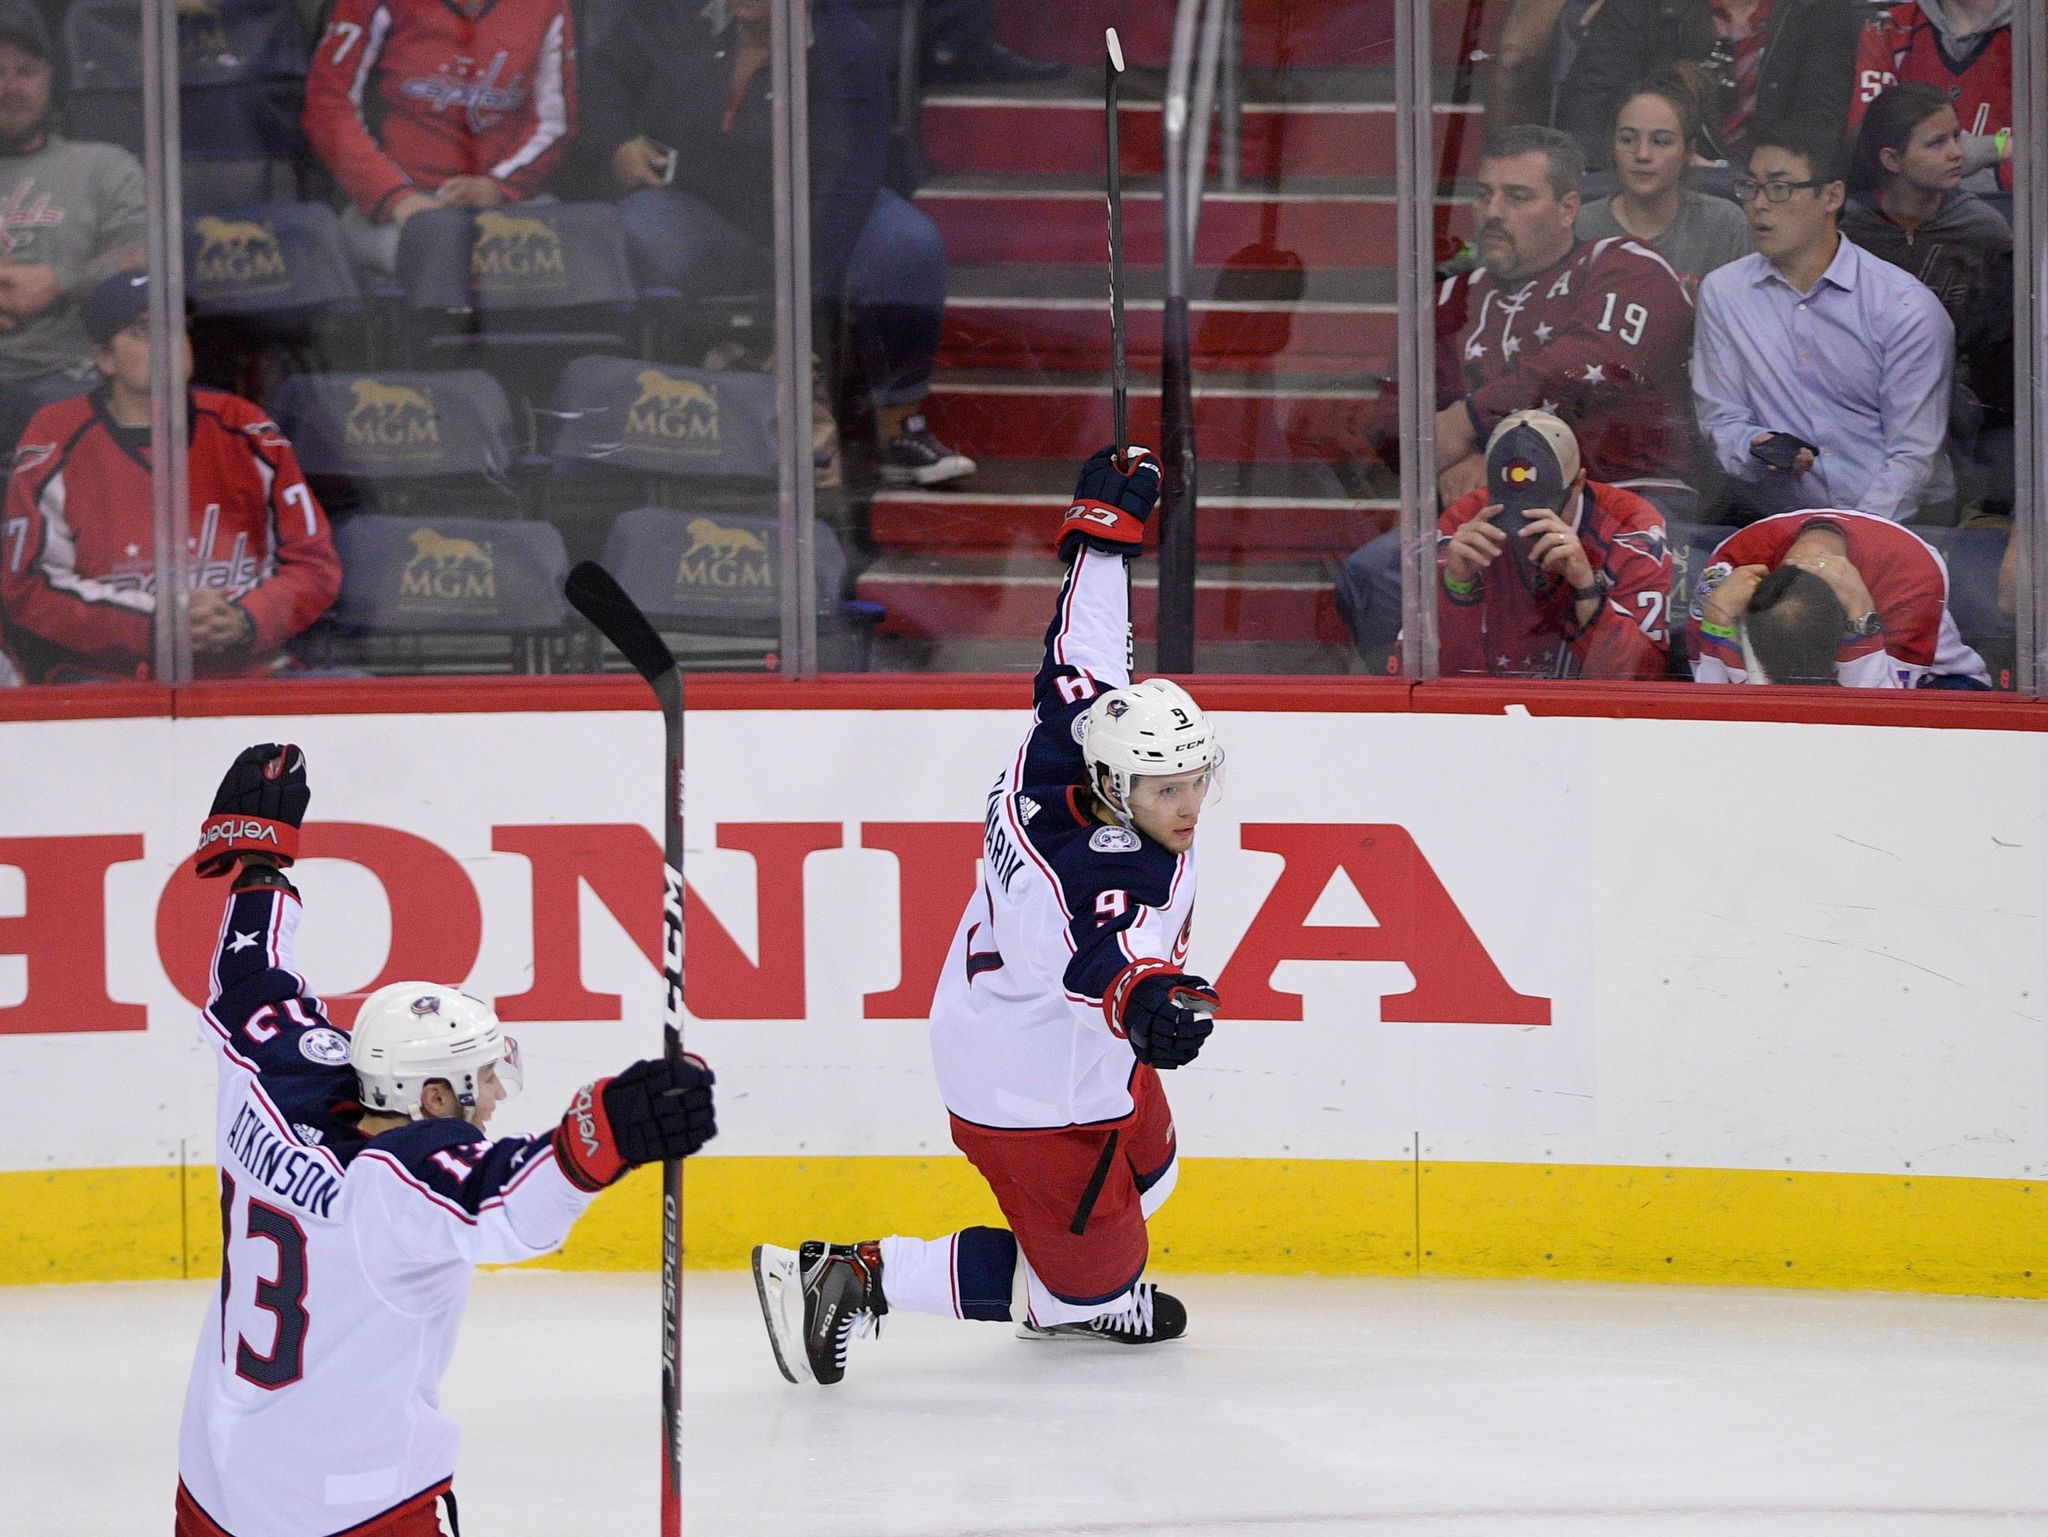 Blue_jackets_capitals_hockey_90370_s2048x1537